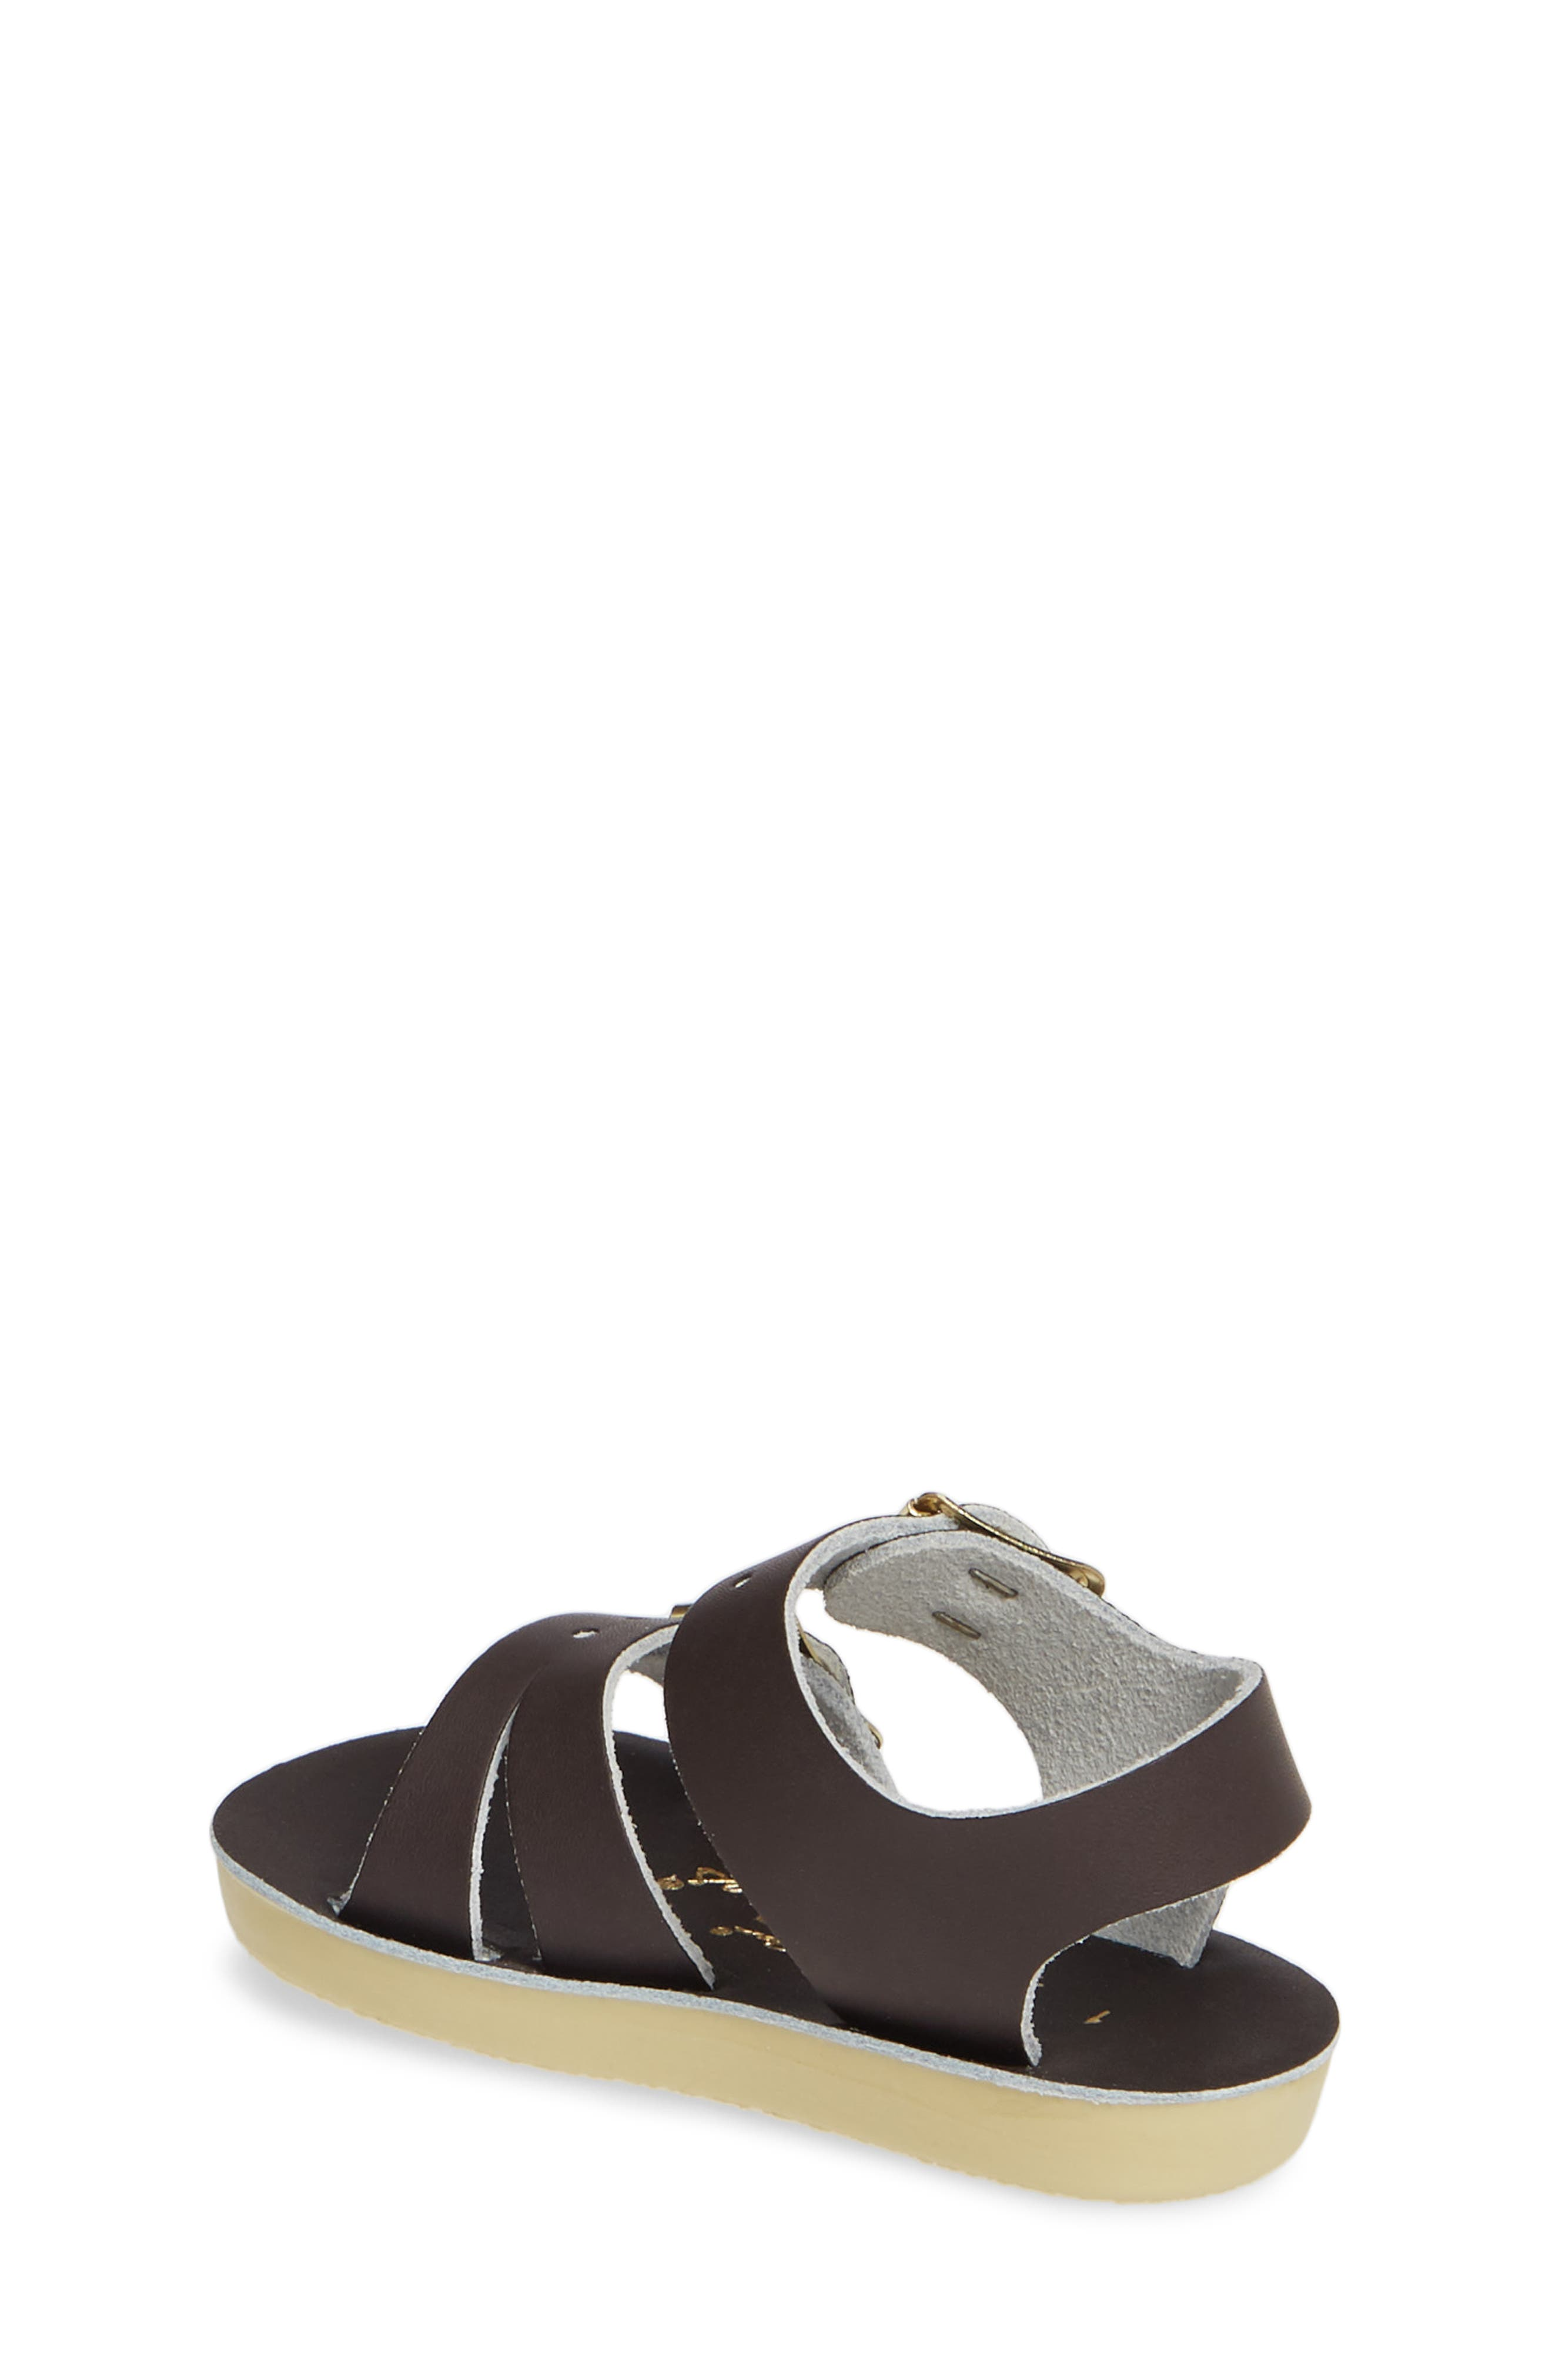 e129411a293e0 Girls' Salt Water Sandals By Hoy Shoes | Nordstrom